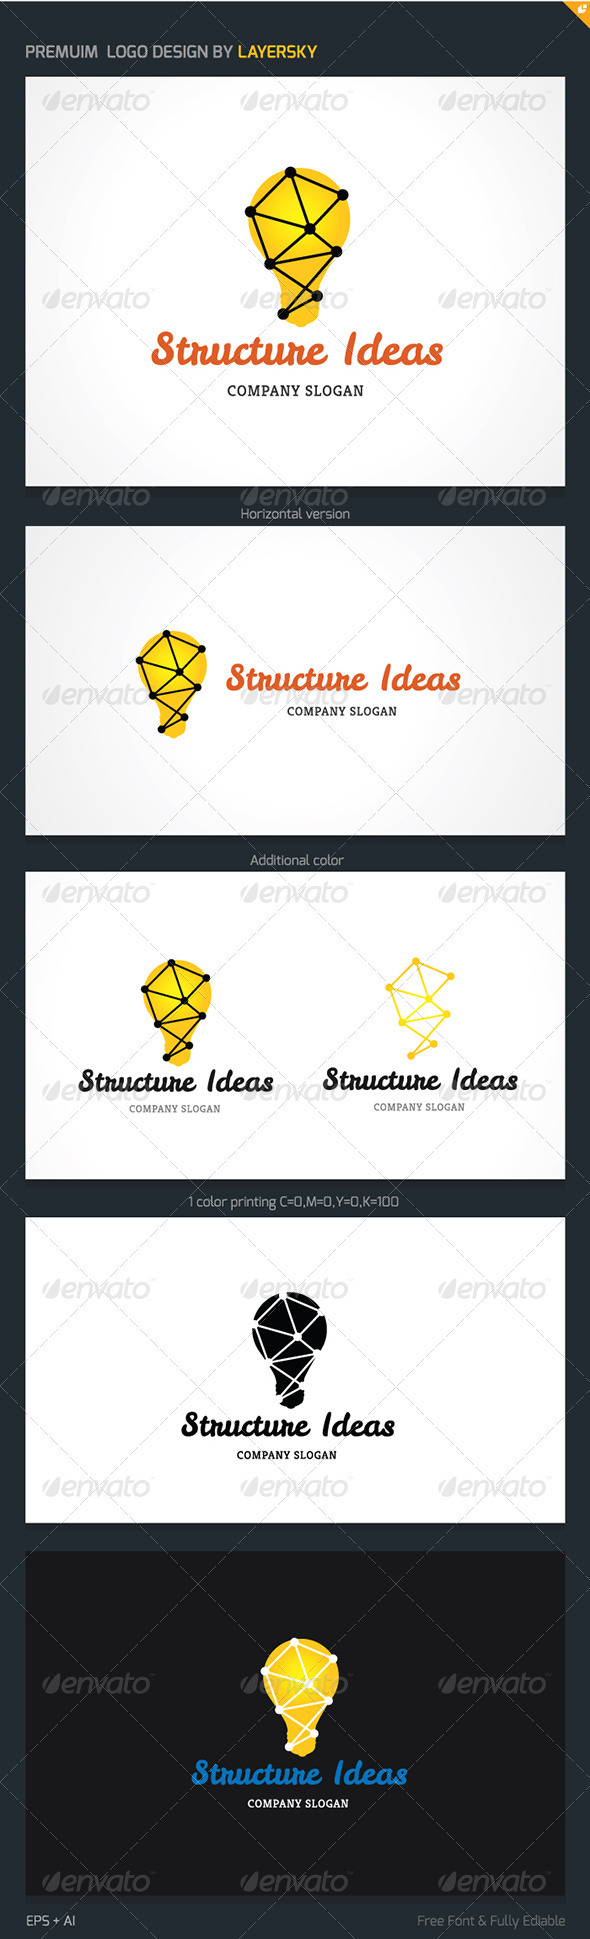 Structure Ideas Logo - Objects Logo Templates